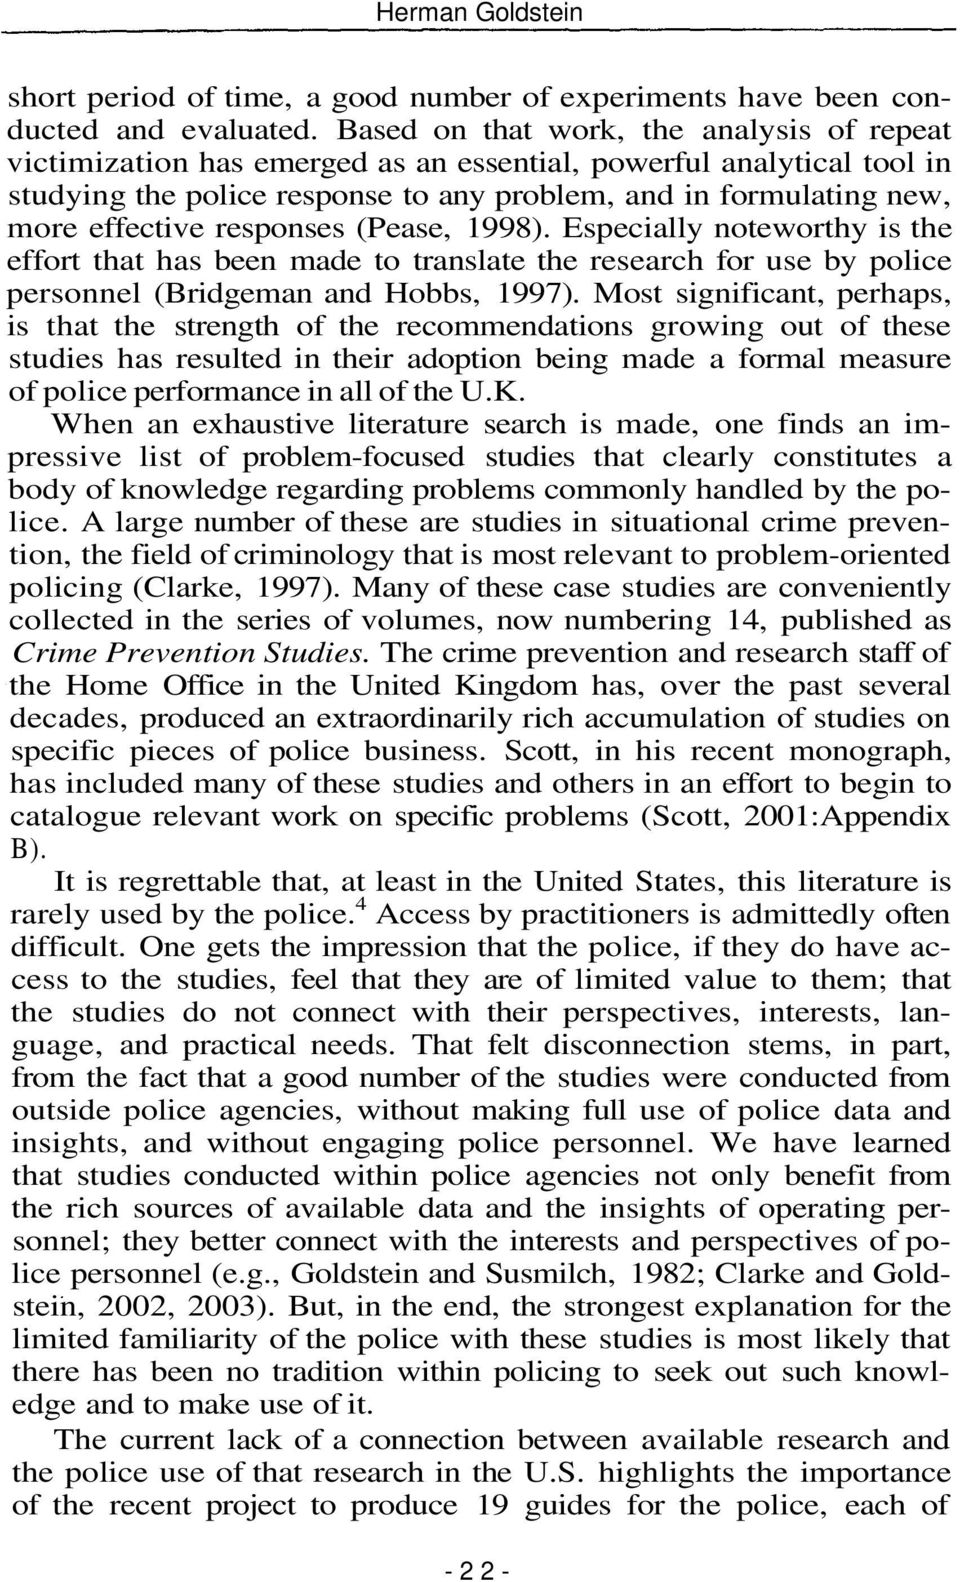 responses (Pease, 1998). Especially noteworthy is the effort that has been made to translate the research for use by police personnel (Bridgeman and Hobbs, 1997).